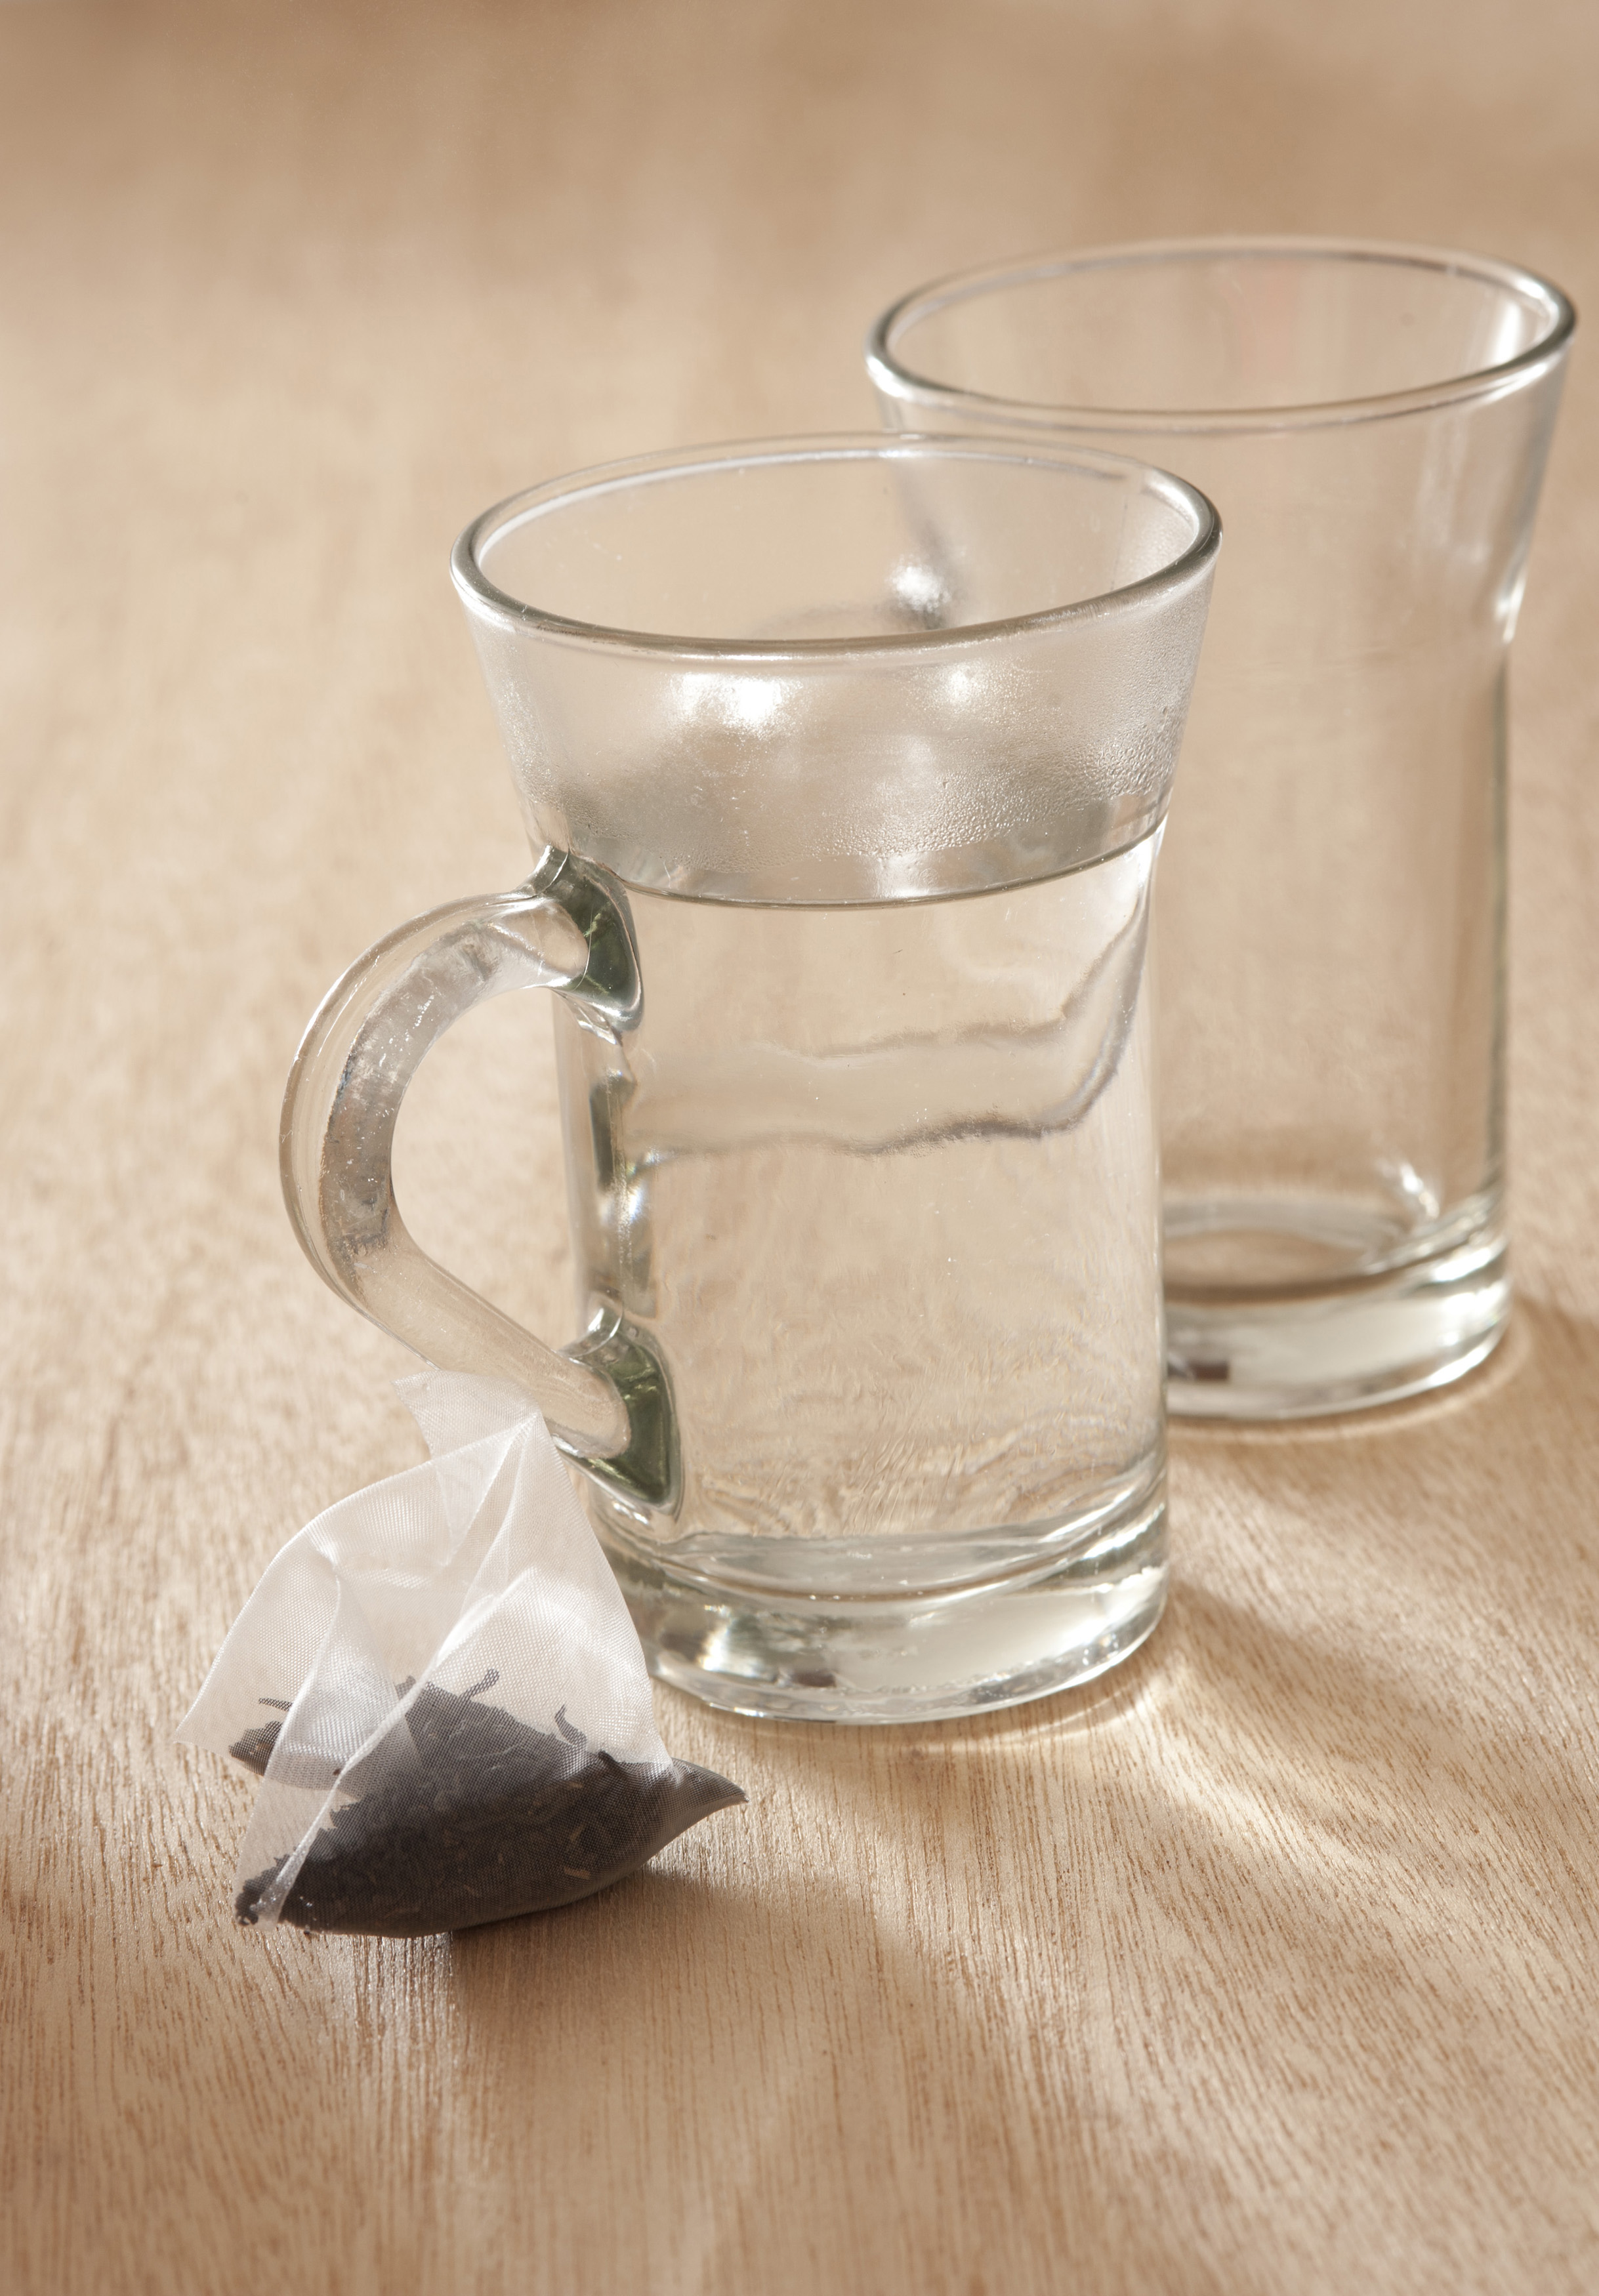 Glass mug filled with boiling water - Free Stock Image